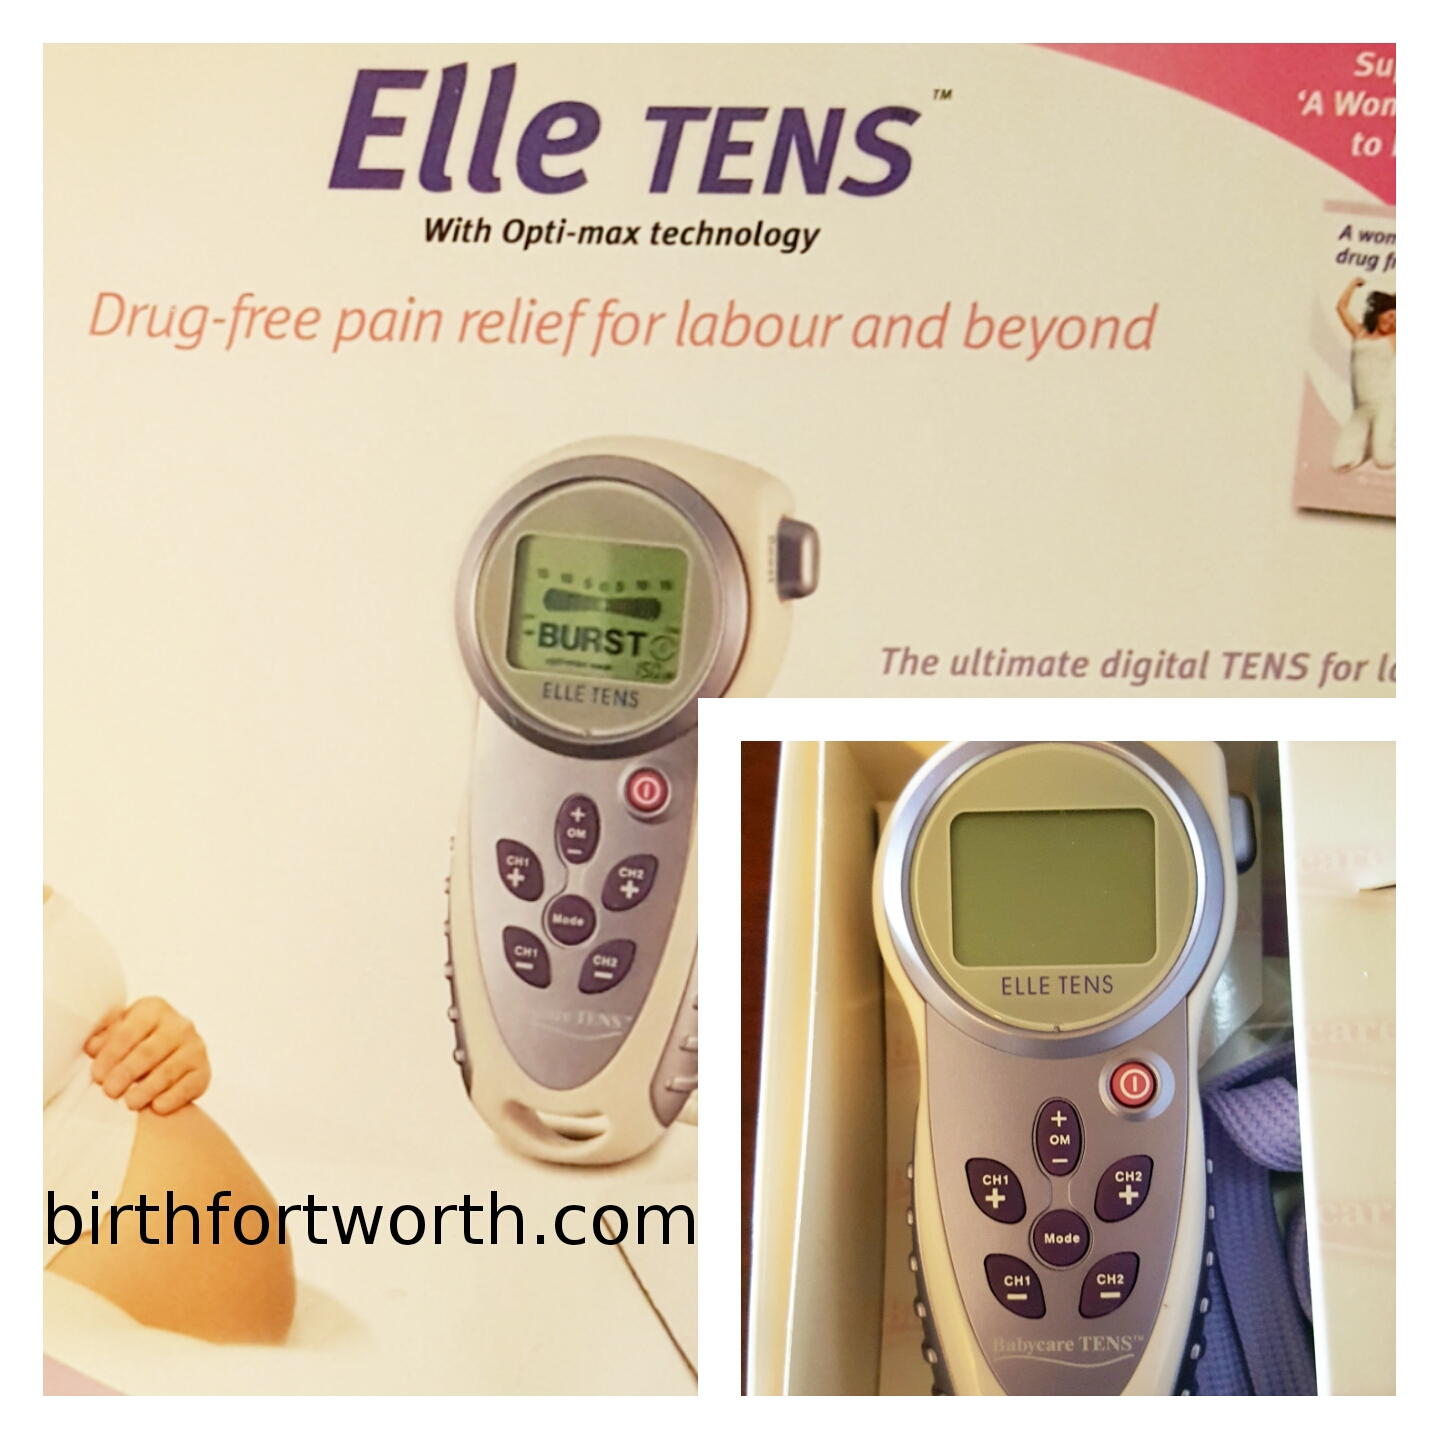 TENS Unit rentals are included in our Full Service Doula Package